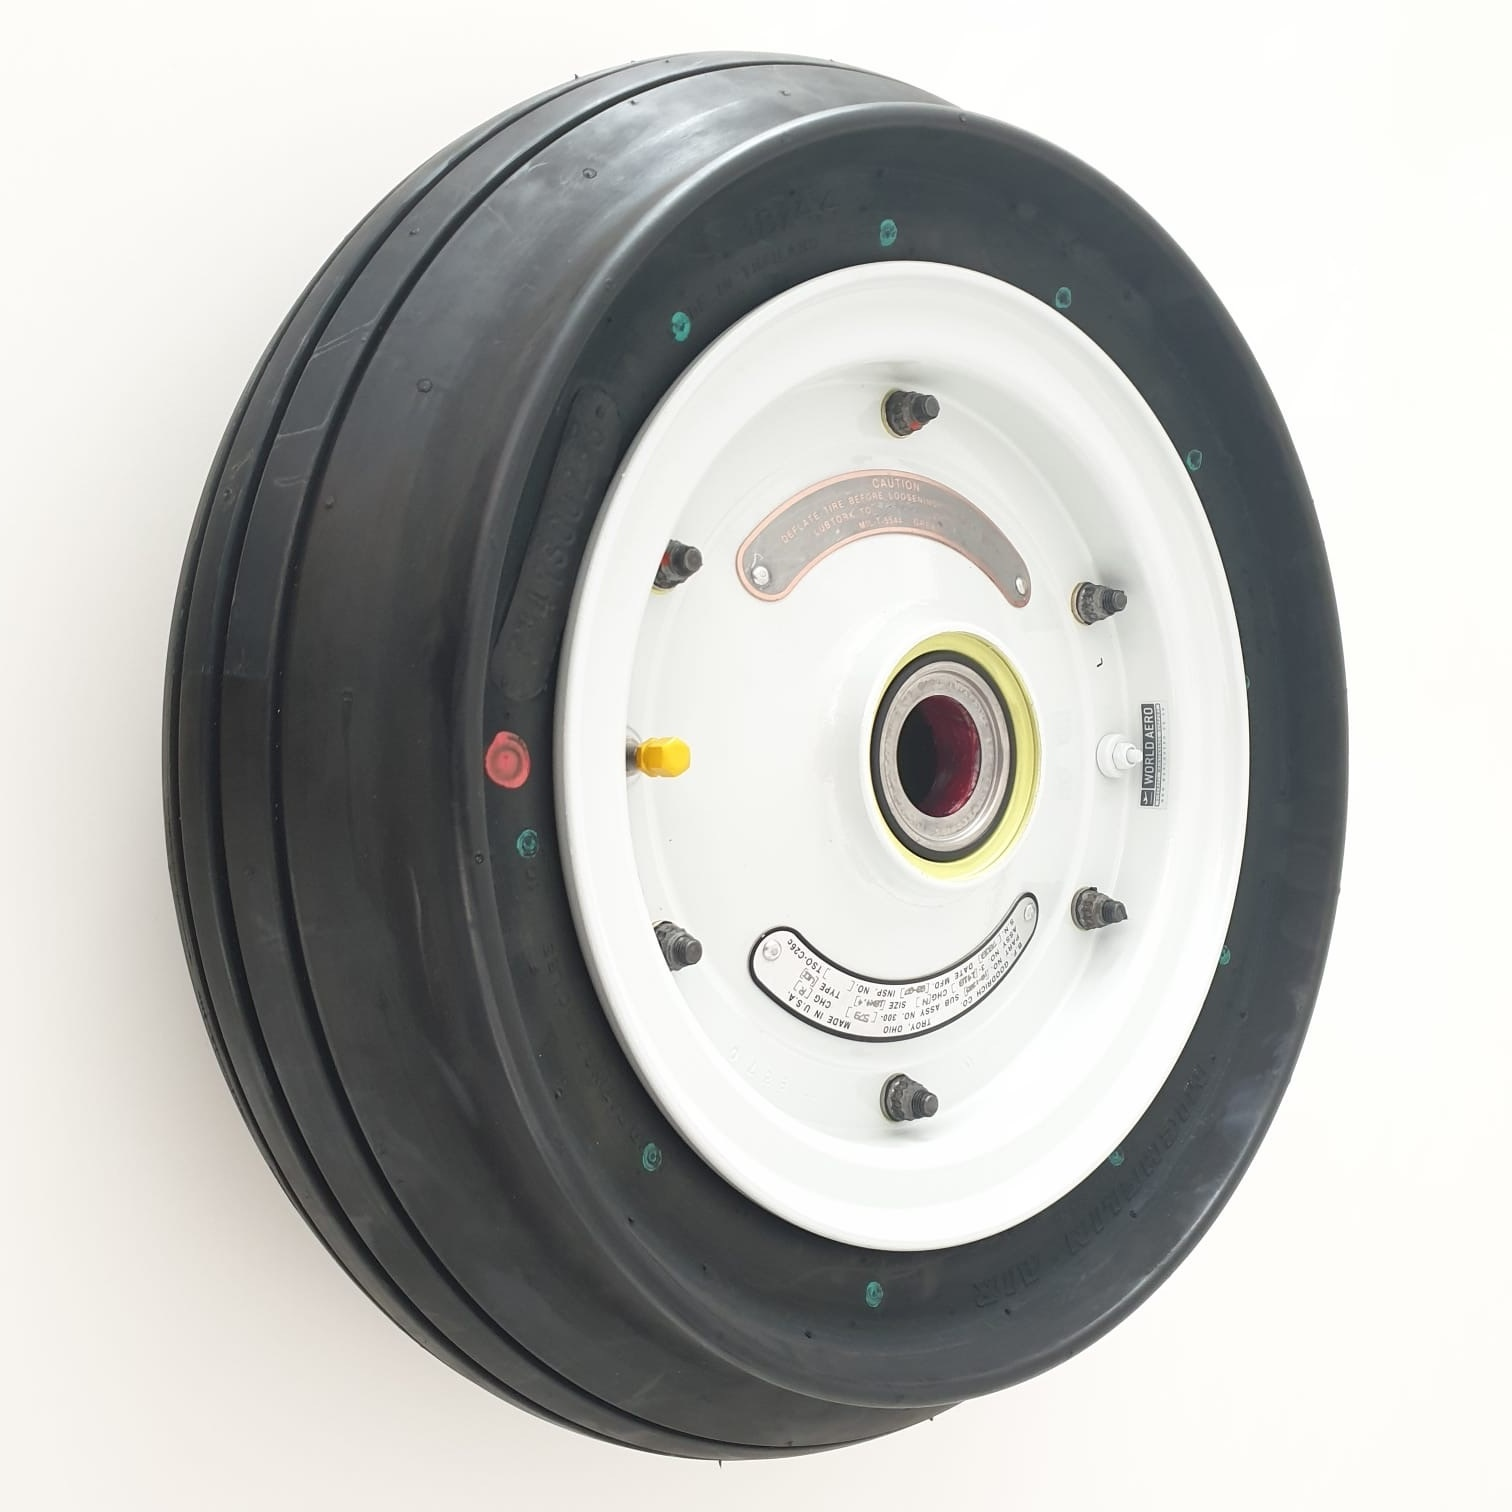 6242050-10 Cessna 560XL nose wheel and tyre tire